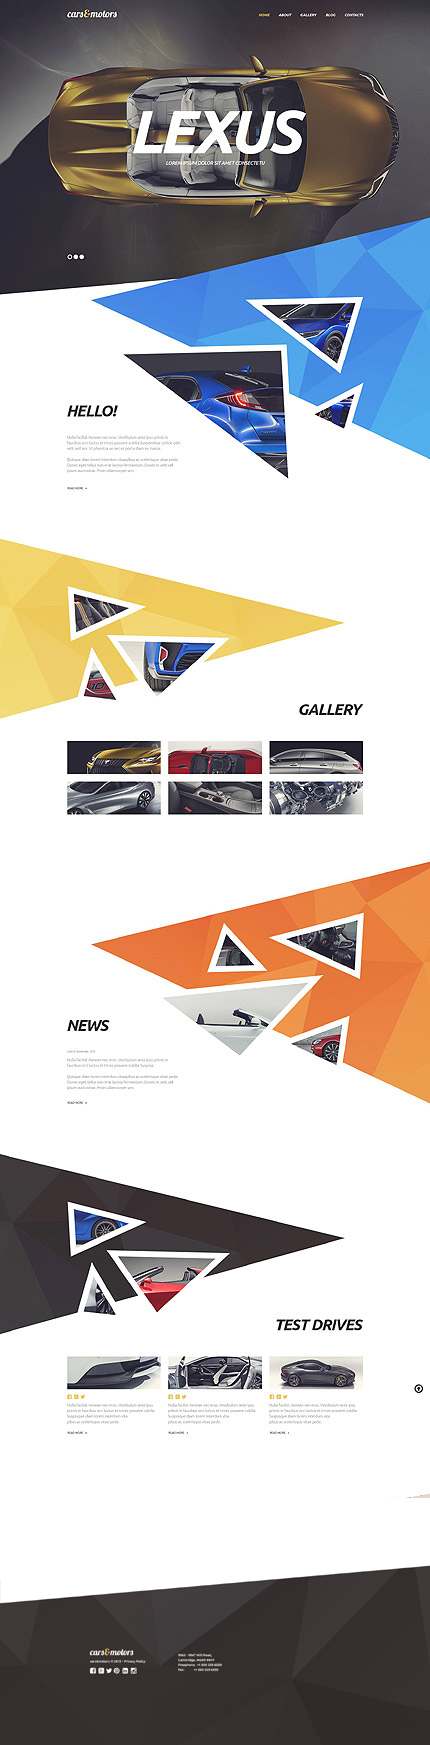 Cars & Motors Responsive WordPress Theme with Parallax and Lazy Load Effect